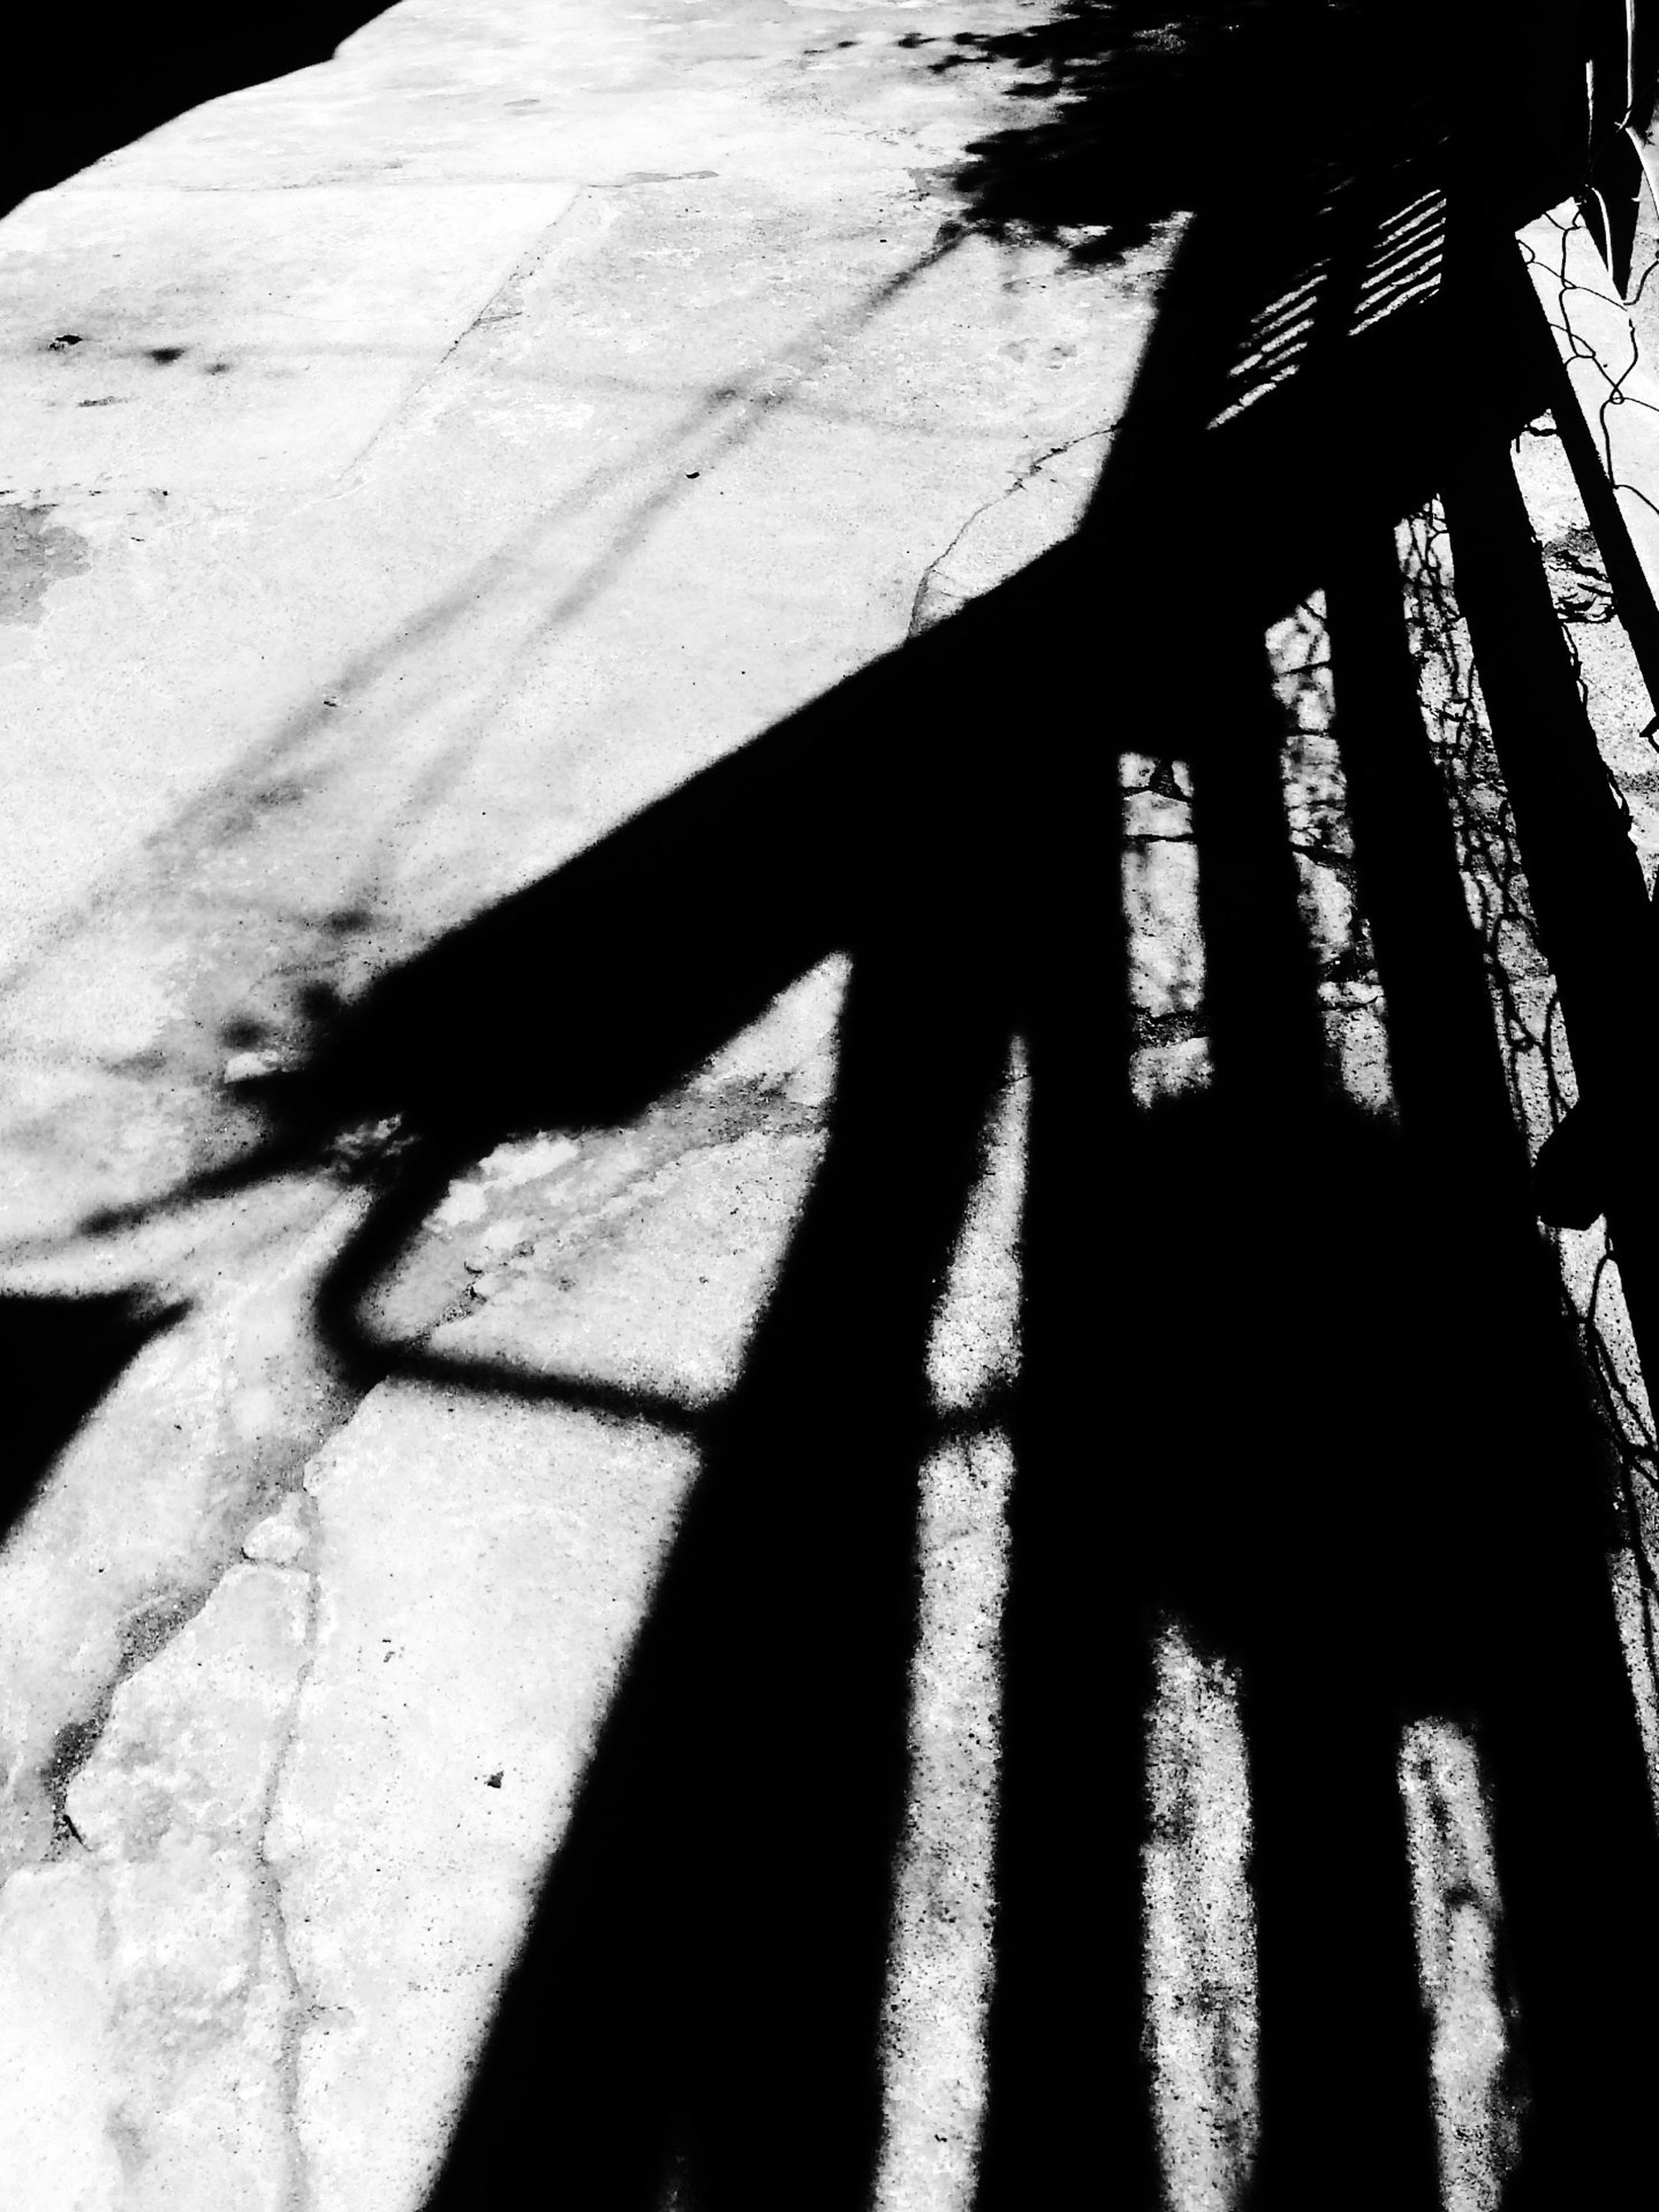 shadow, sunlight, focus on shadow, high angle view, silhouette, outdoors, unrecognizable person, street, steps, day, sunny, nature, footpath, walking, textured, lifestyles, standing